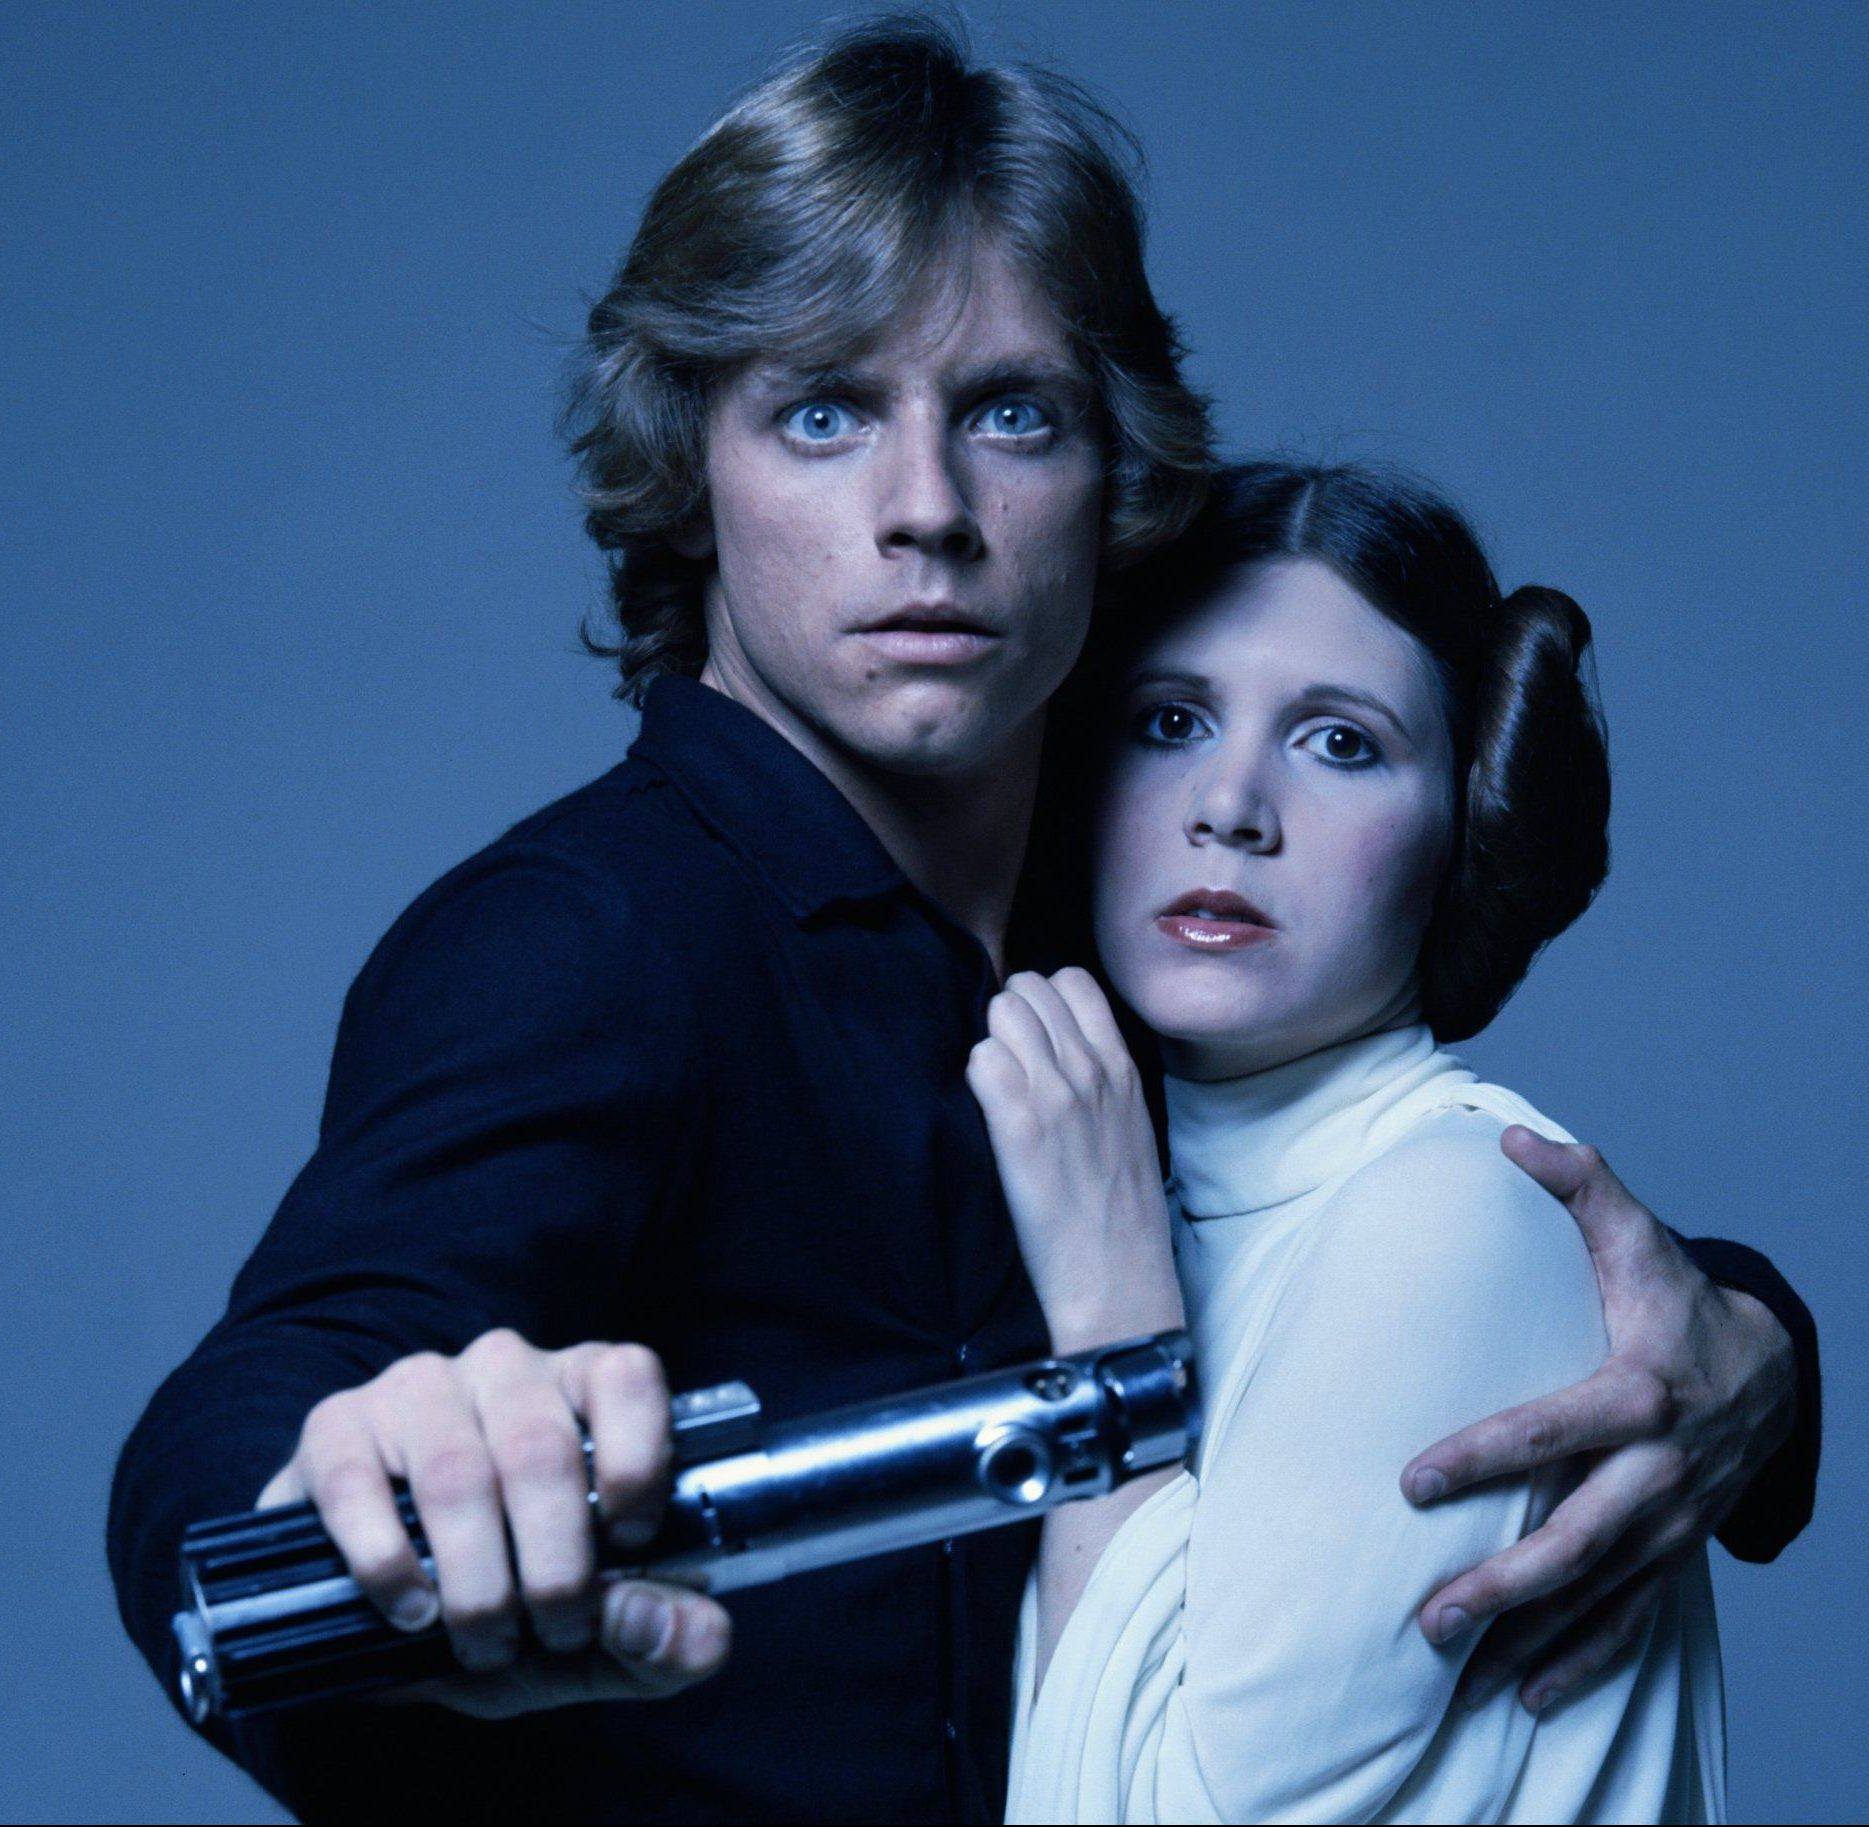 28 7 e1601473509469 20 Little-Known Facts About The Legendary Mark Hamill